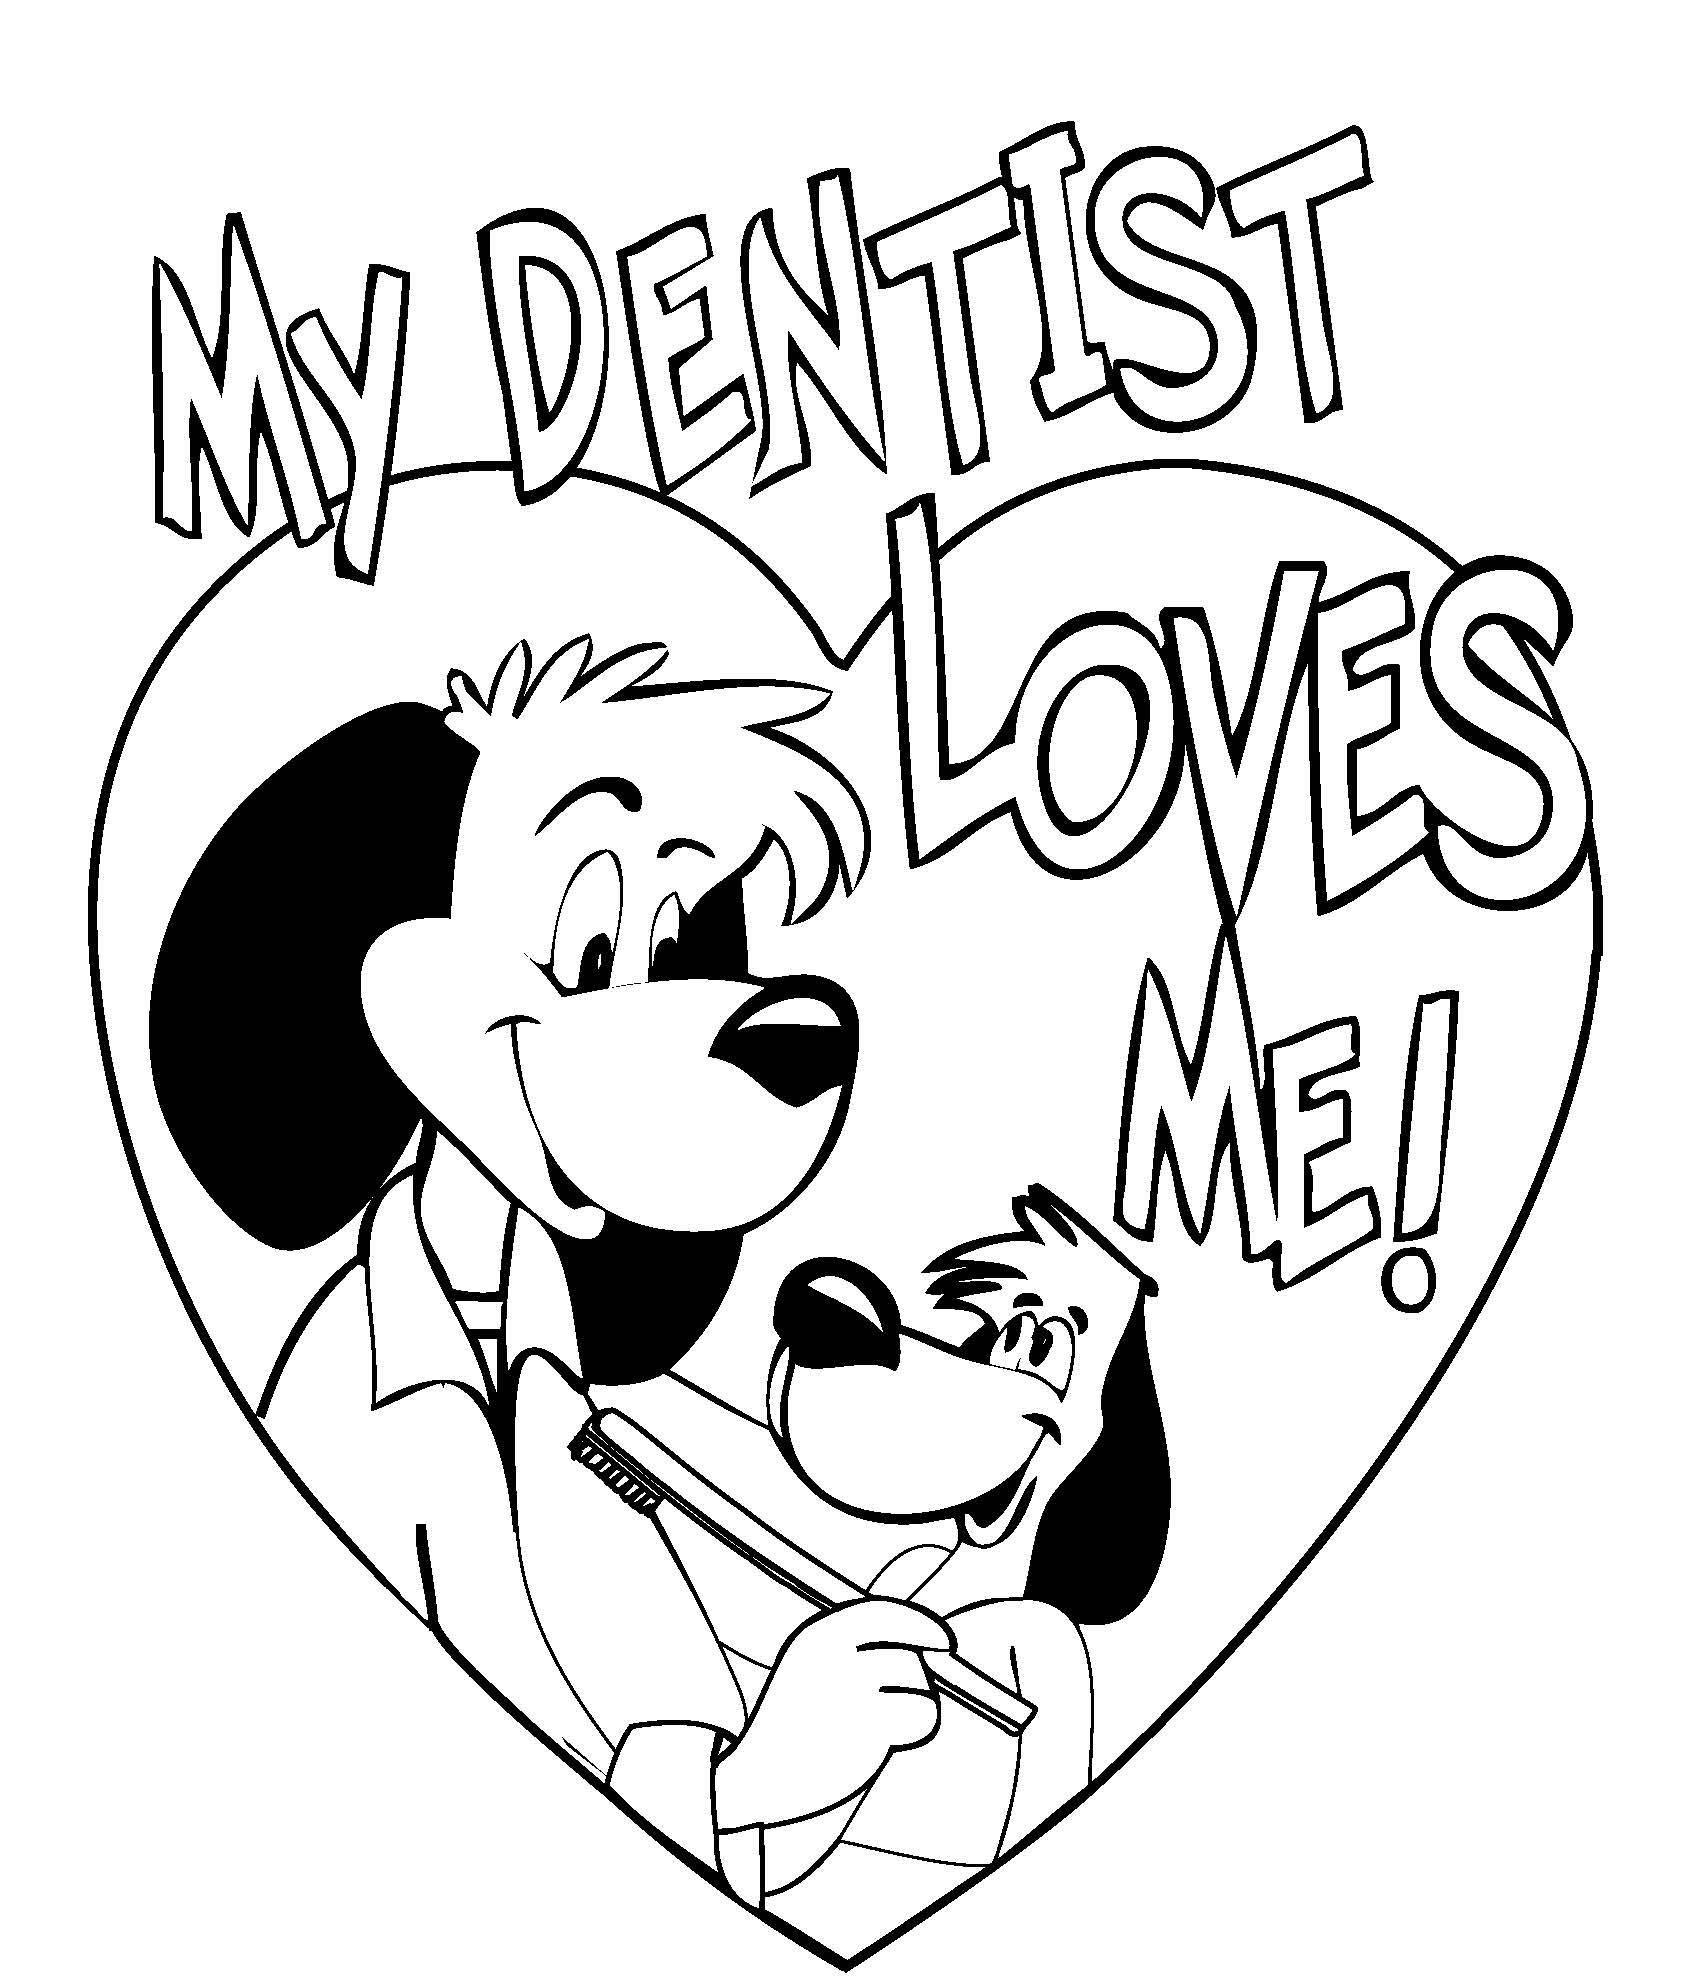 Some Really Cute Dental Coloring Pages Dds Pinterest to Print Of Teeth Coloring Pages Preschool Gallery